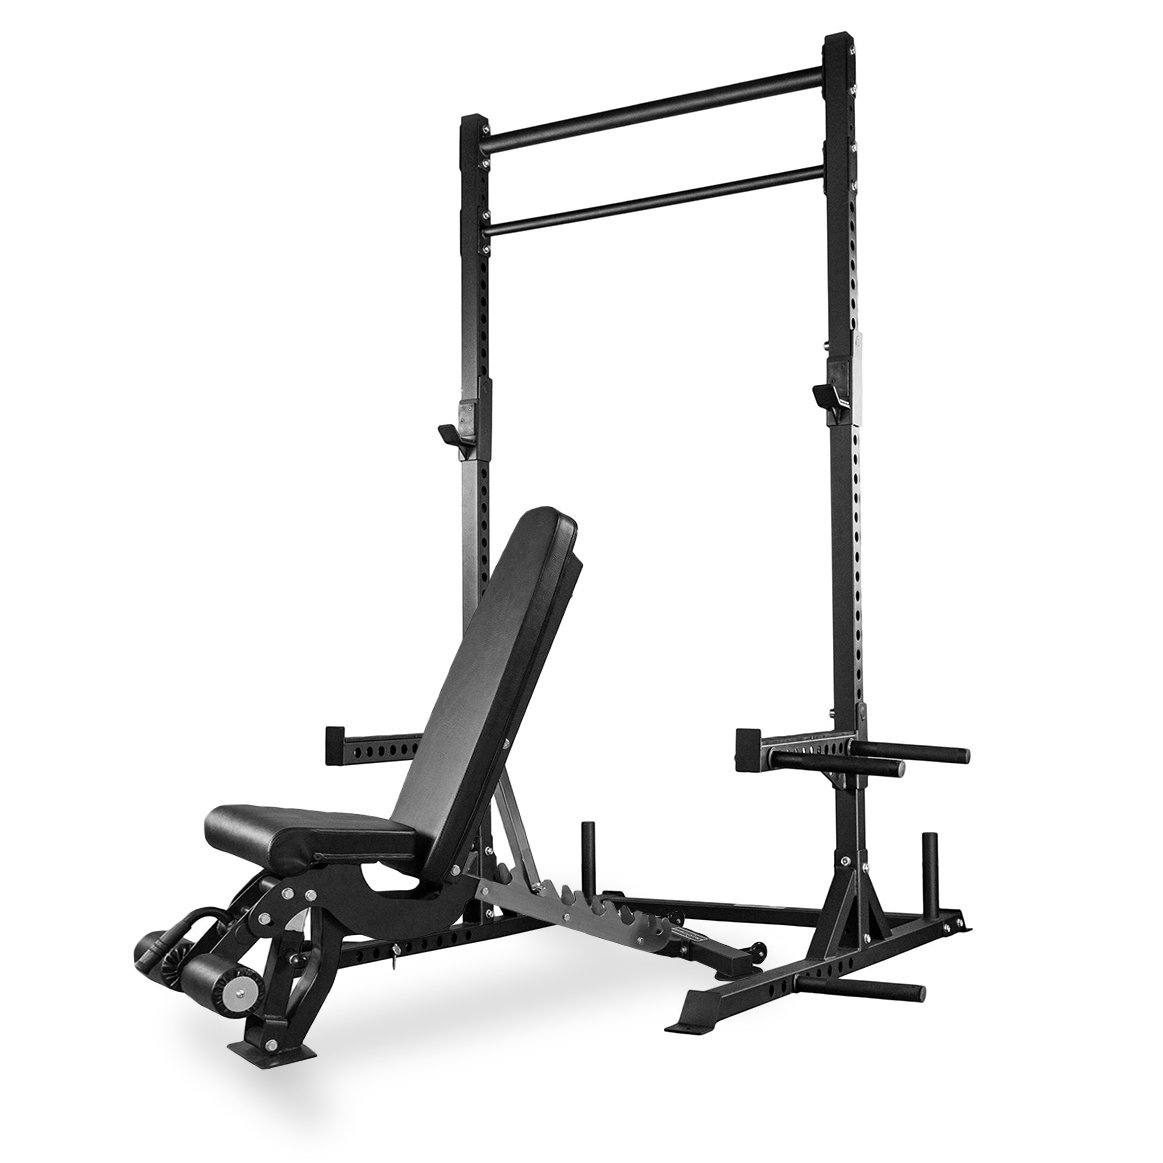 Rep Squat Rack with Pull Up Bar and Adjustable Bench - 110 in